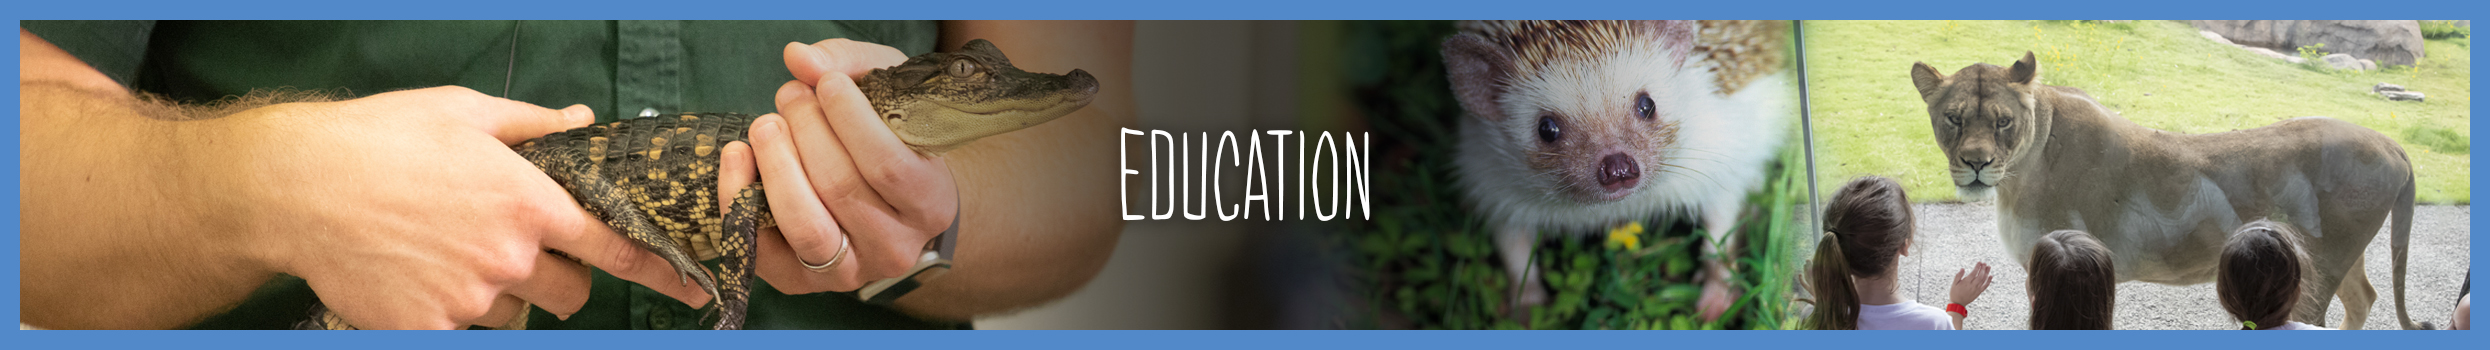 education-main-header-slider2